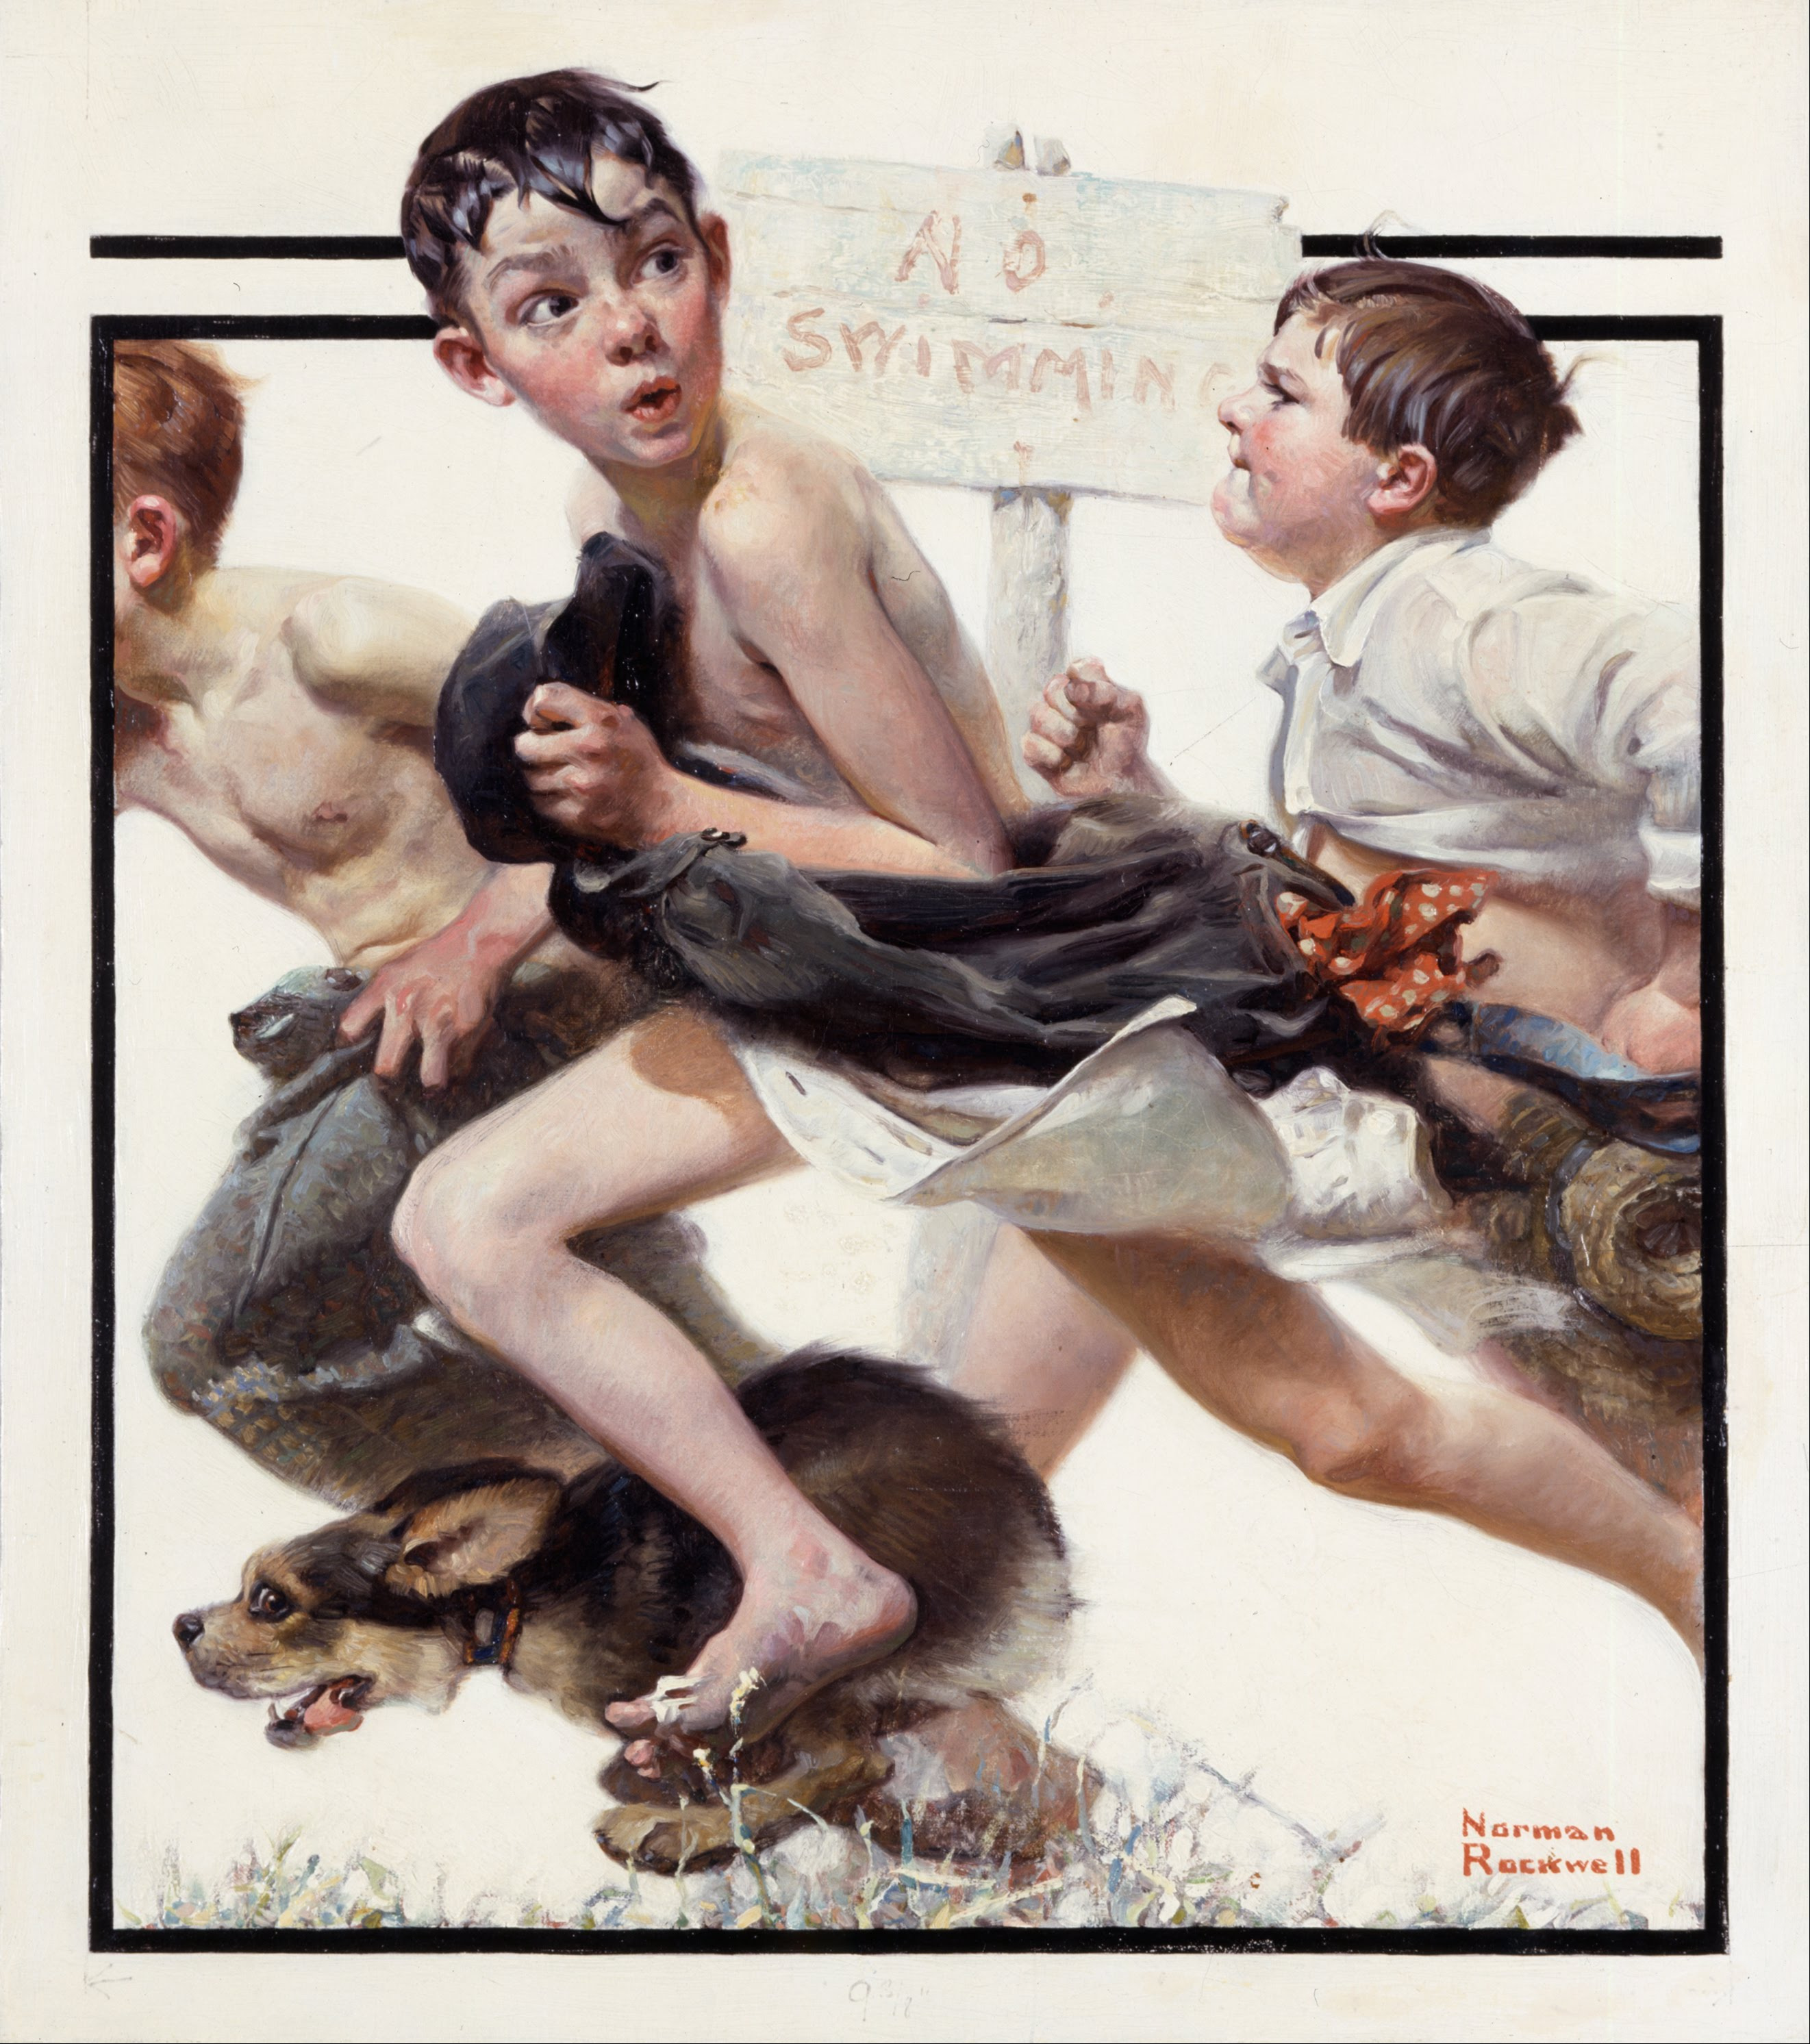 Norman Rockwell No swimming (1921) ©Norman Rockwell Museum, Stockbridge, USA